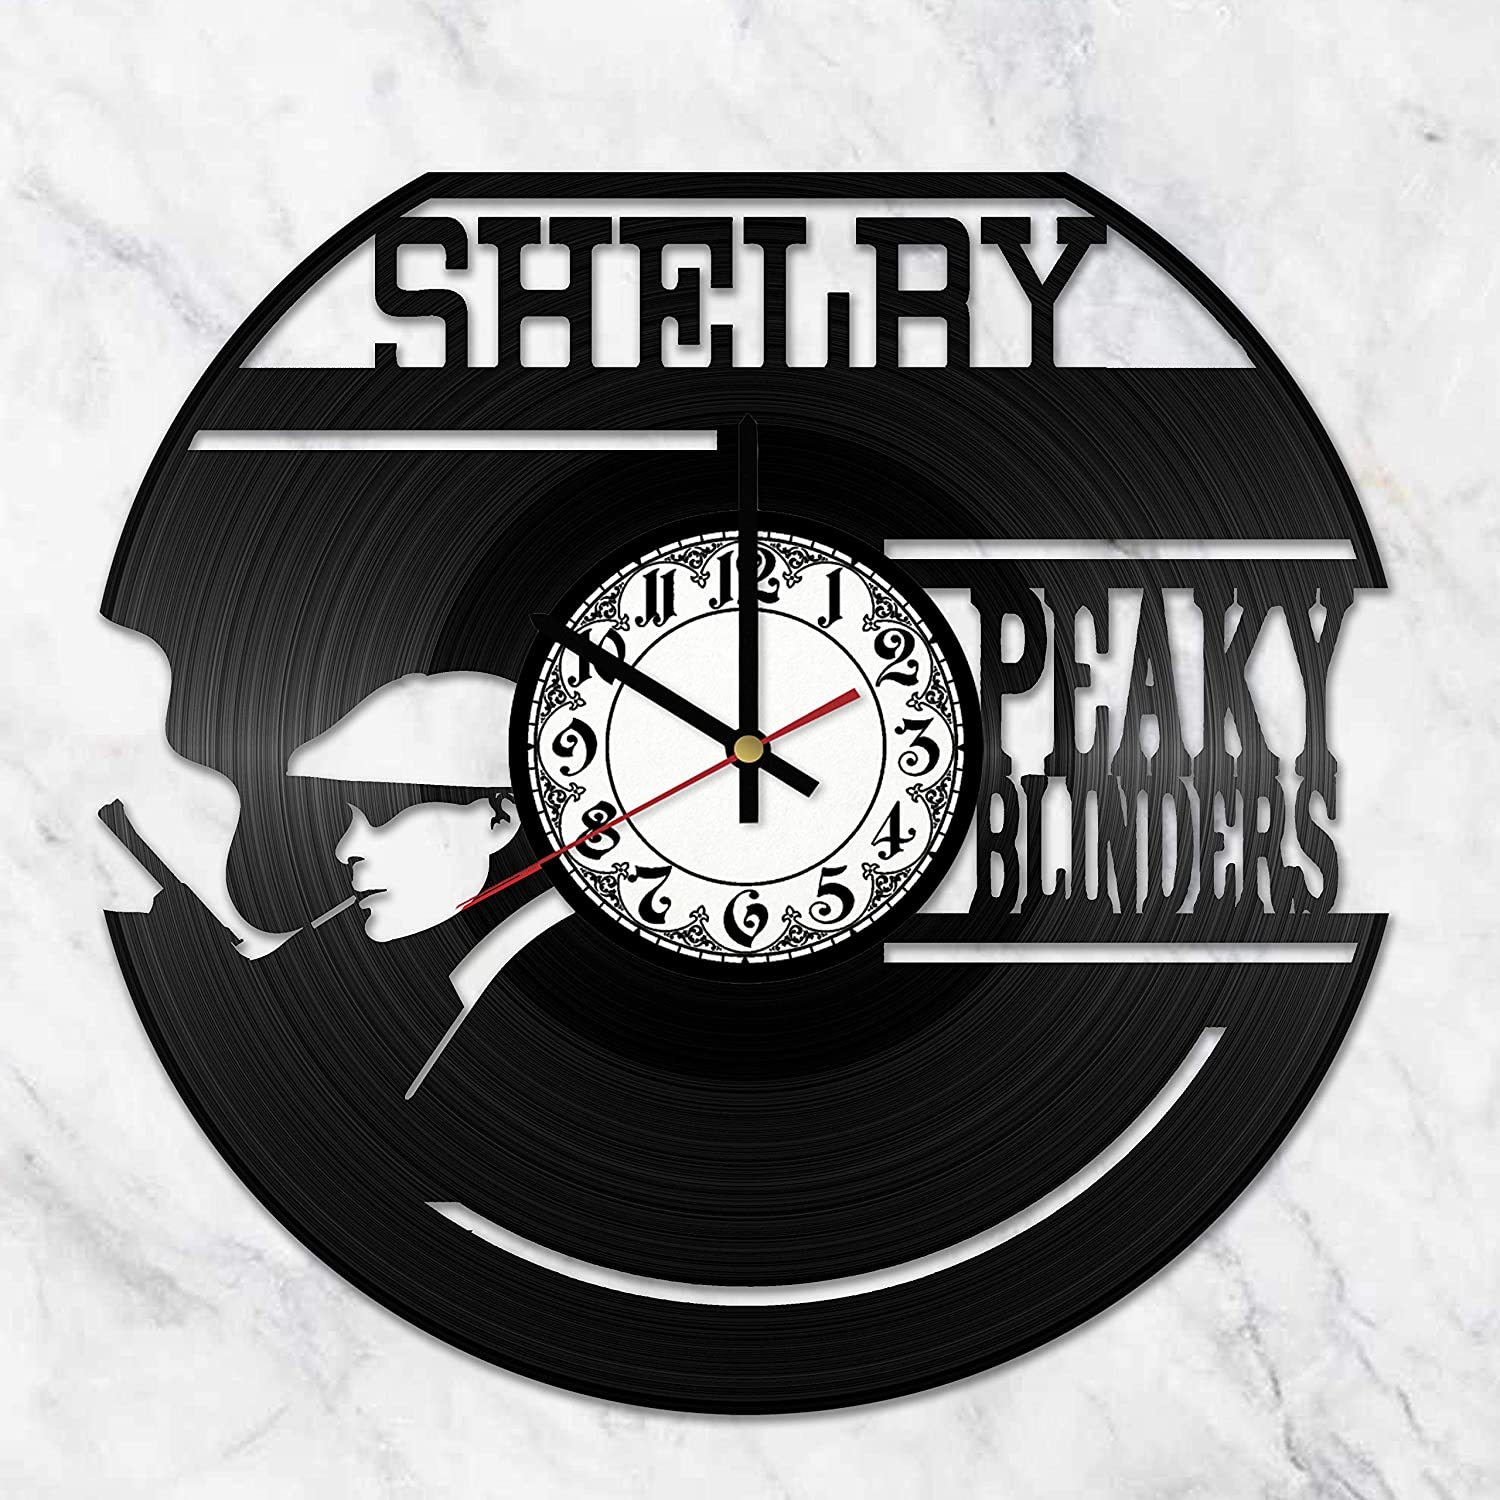 OlhaArtShop Peaky Blinders Vinyl Wall Clock, Crime Drama Vinyl Record Handmade Art Decor for Home Room Kitchen, Vintage Original Gift for Any Occasion, Party Supplies Decoration